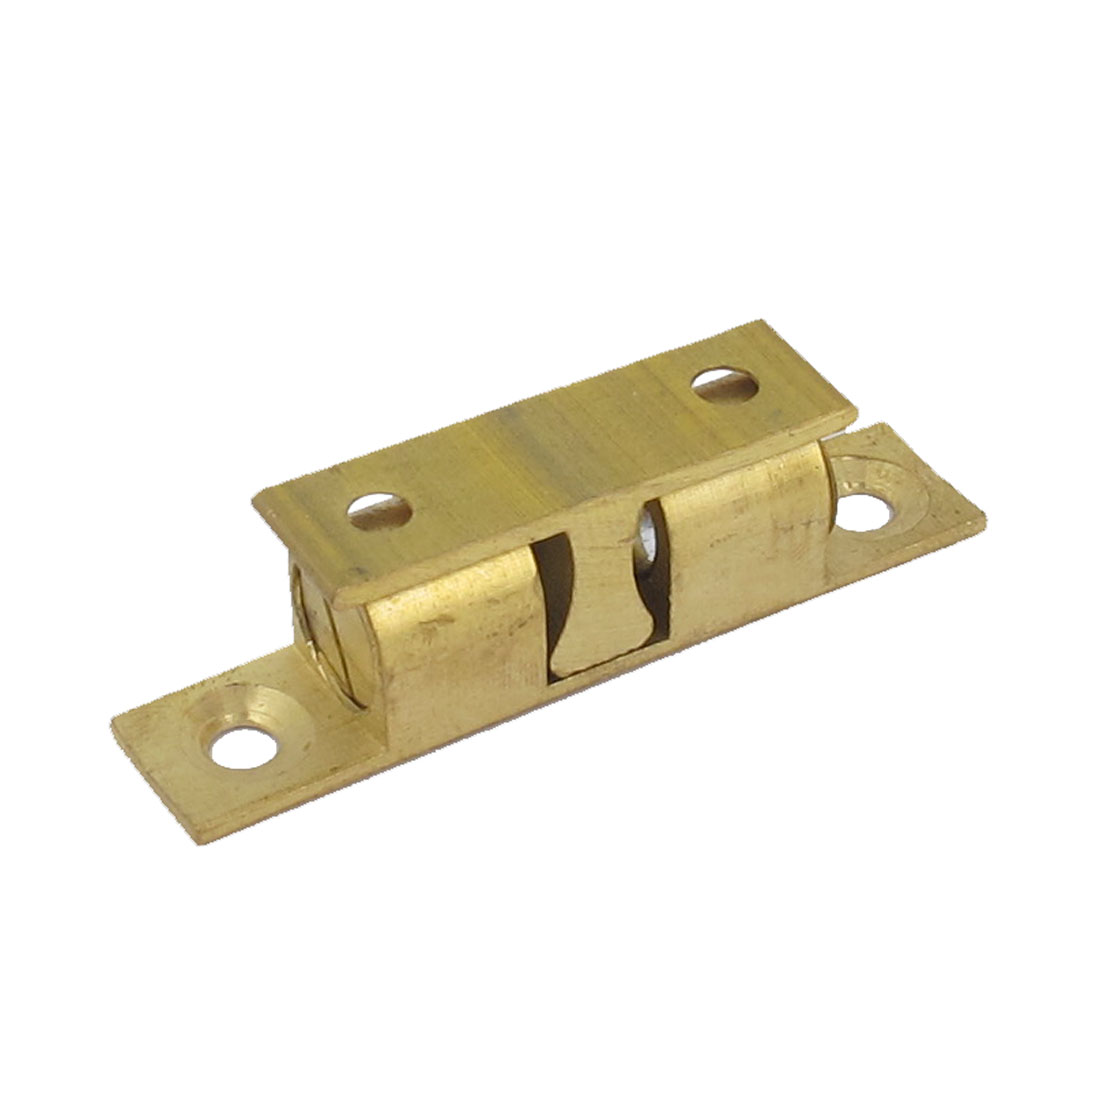 Cupboard Cabinet Closet Drawer Brass Double Ball Catch Roller Latch 47mm Length